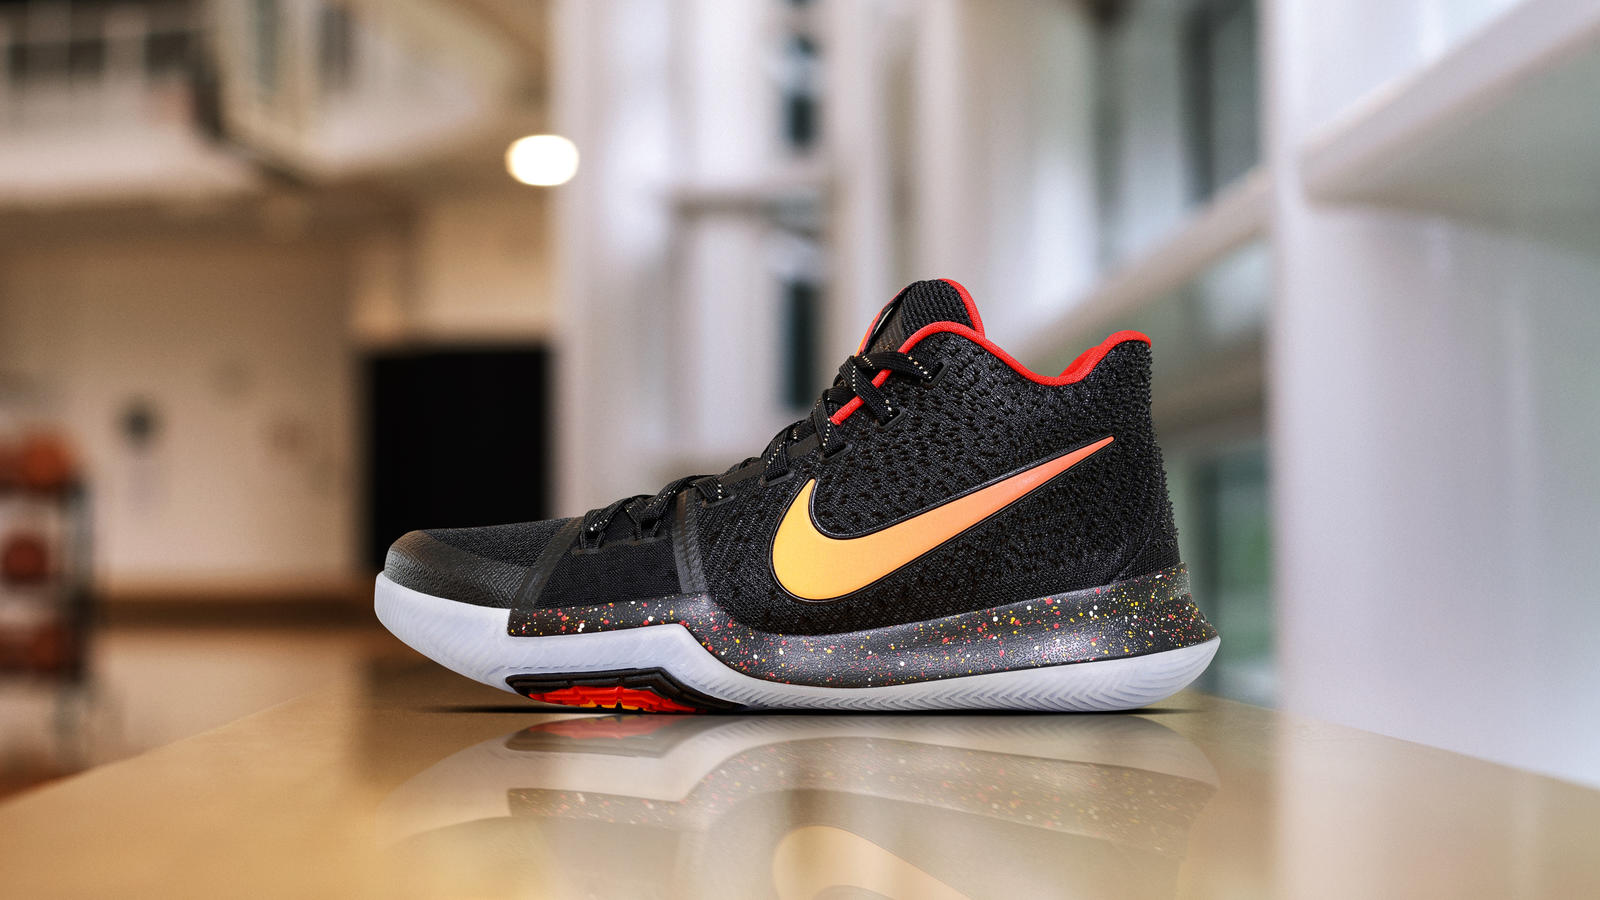 new products 977cb cea29 KYRIE 3 PE - Nike News